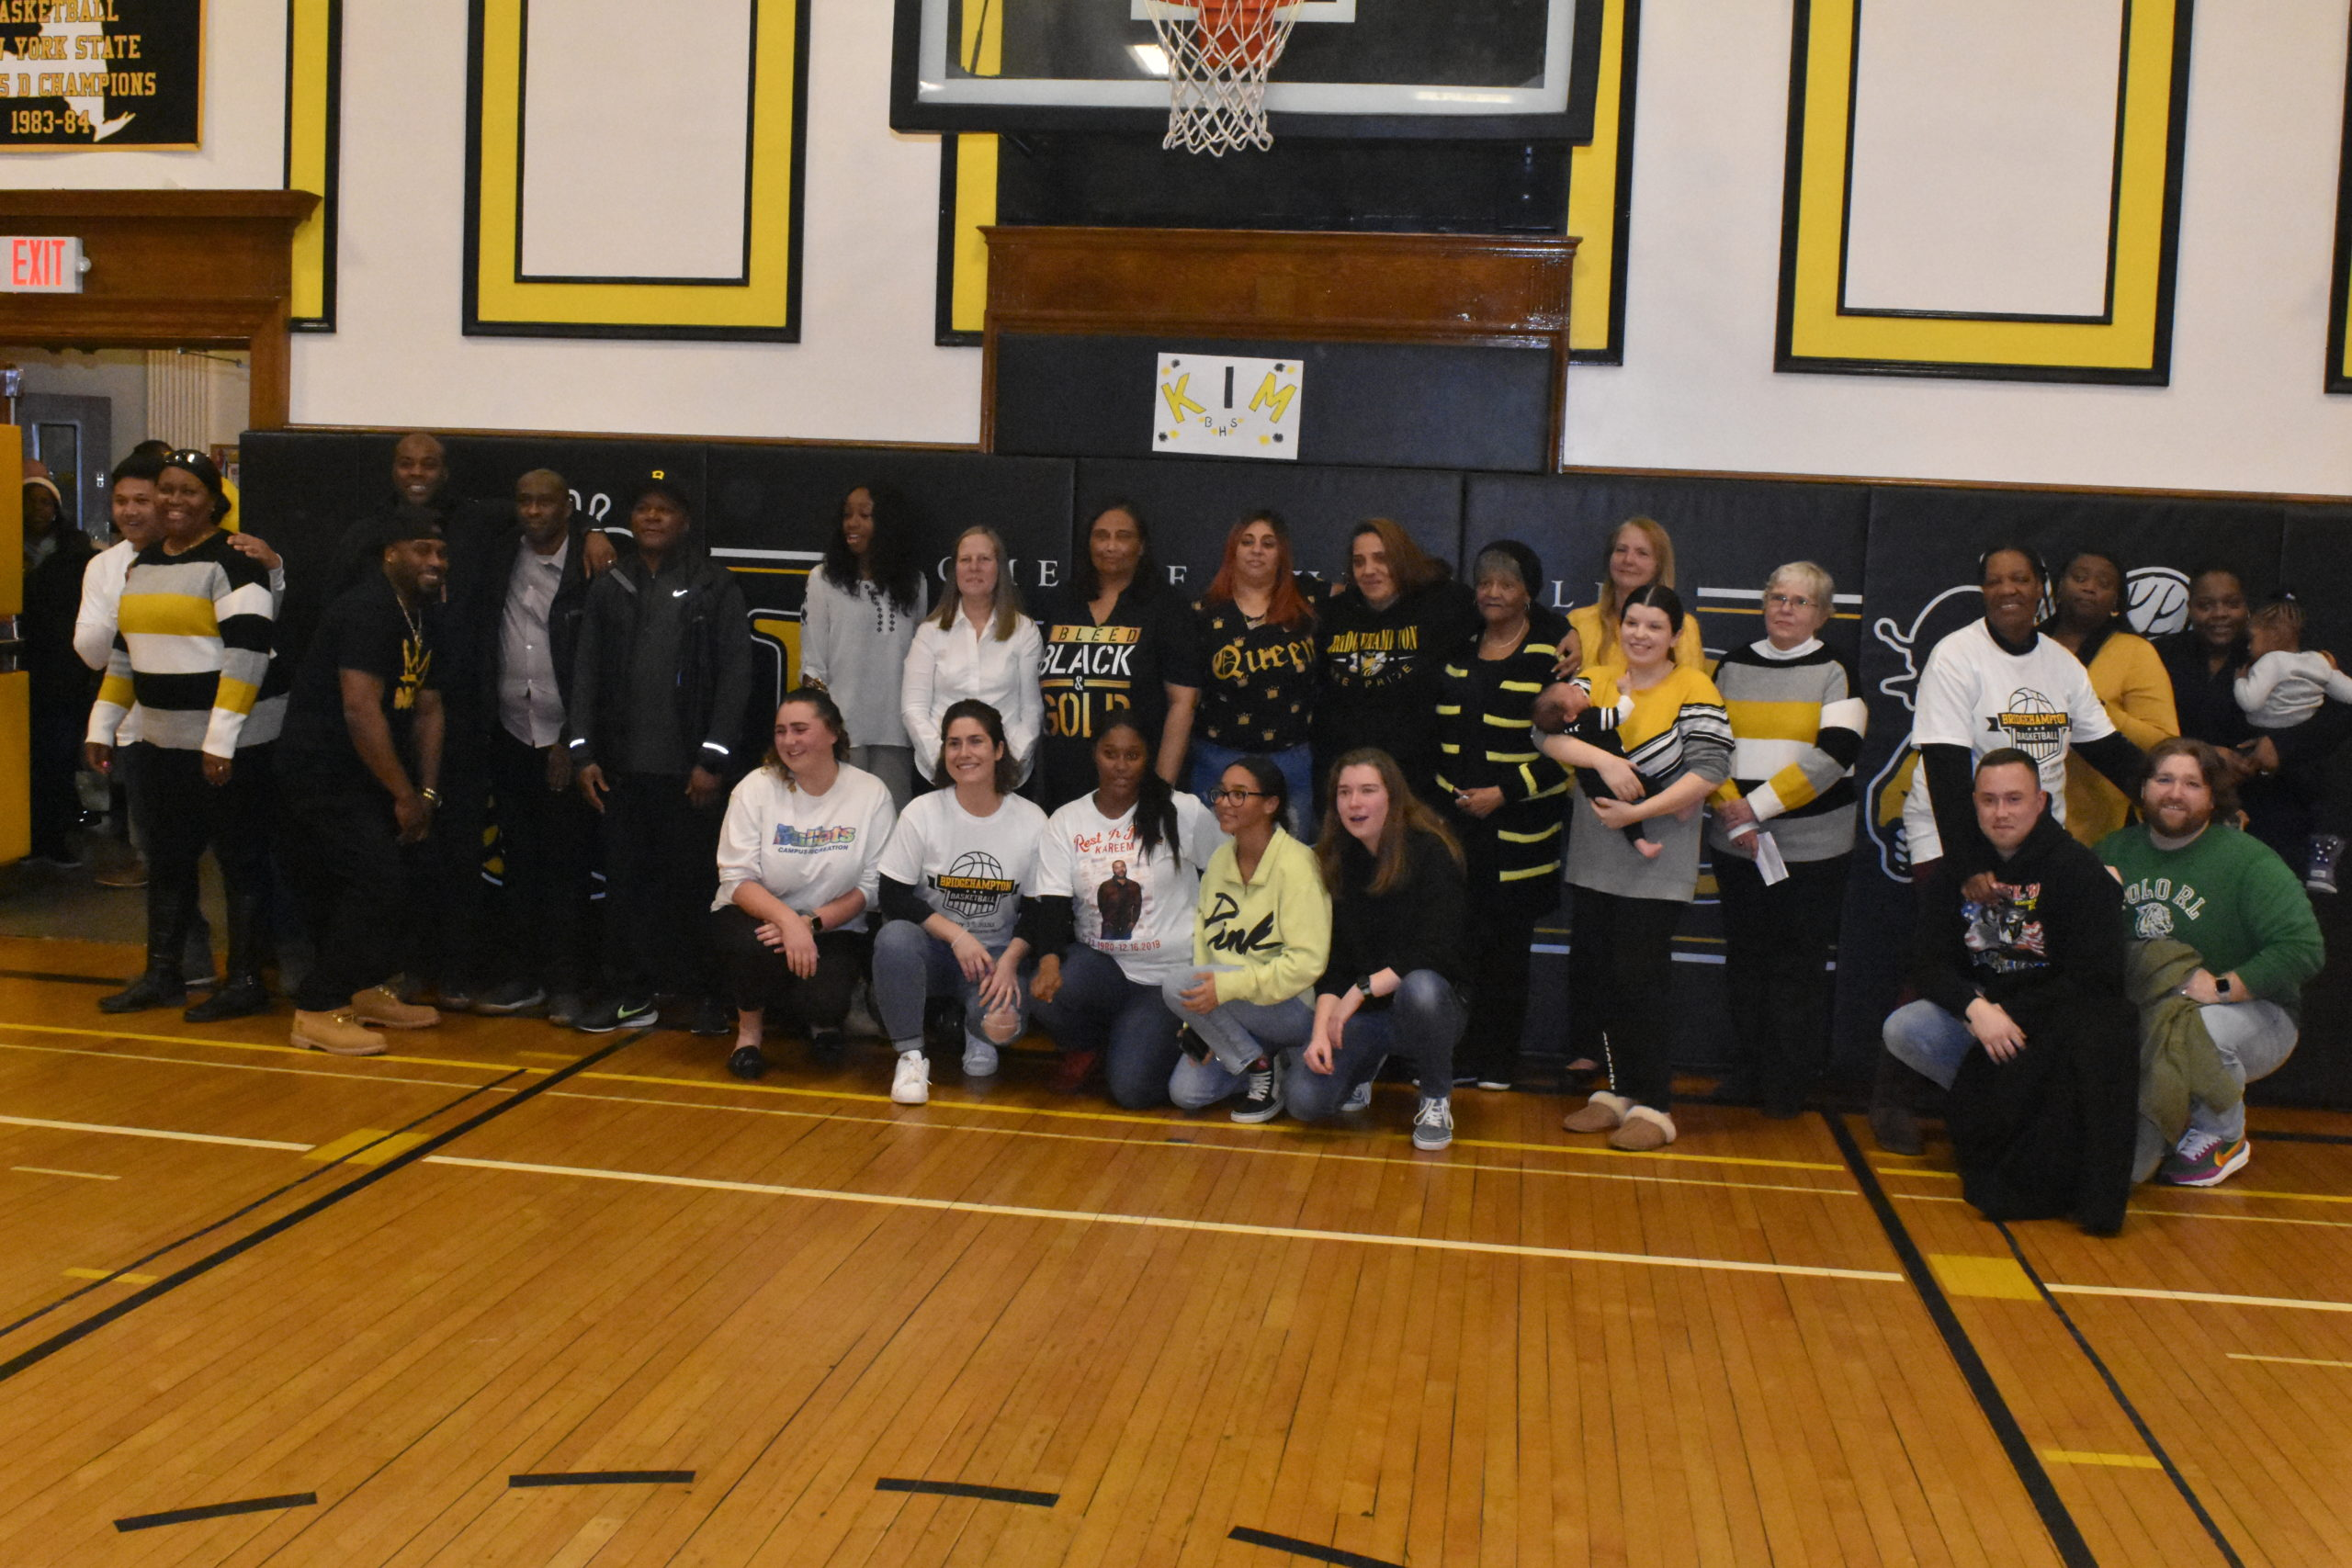 Many Bridgehampton alumni showed up to help close out The Hive on February 5.